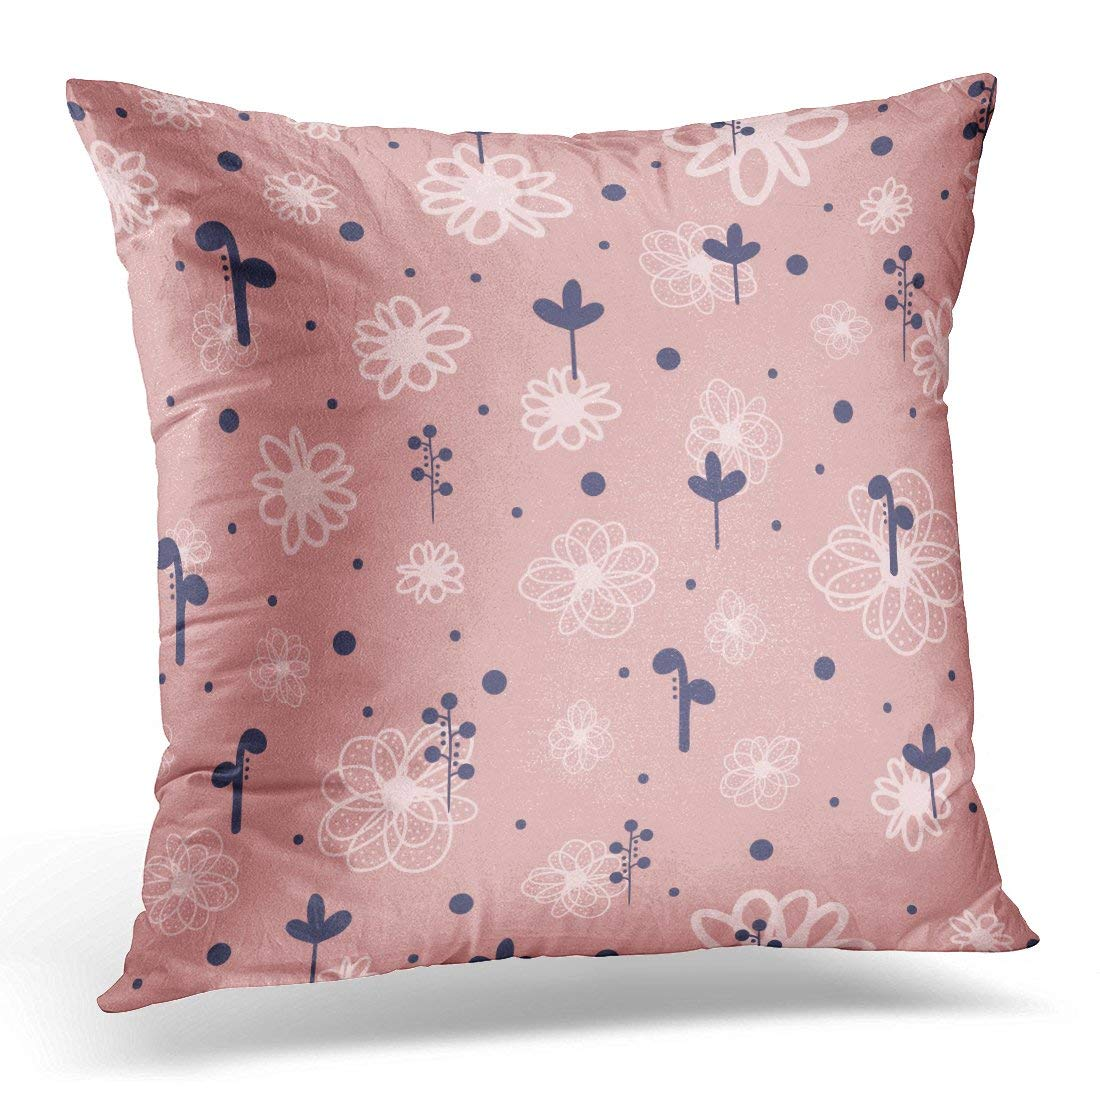 ARHOME Blue Abstract Cute Floral for Children Drawn Sketch Doodle Scribble Pink Autumn Pillow Case Pillow Cover 20x20 inch